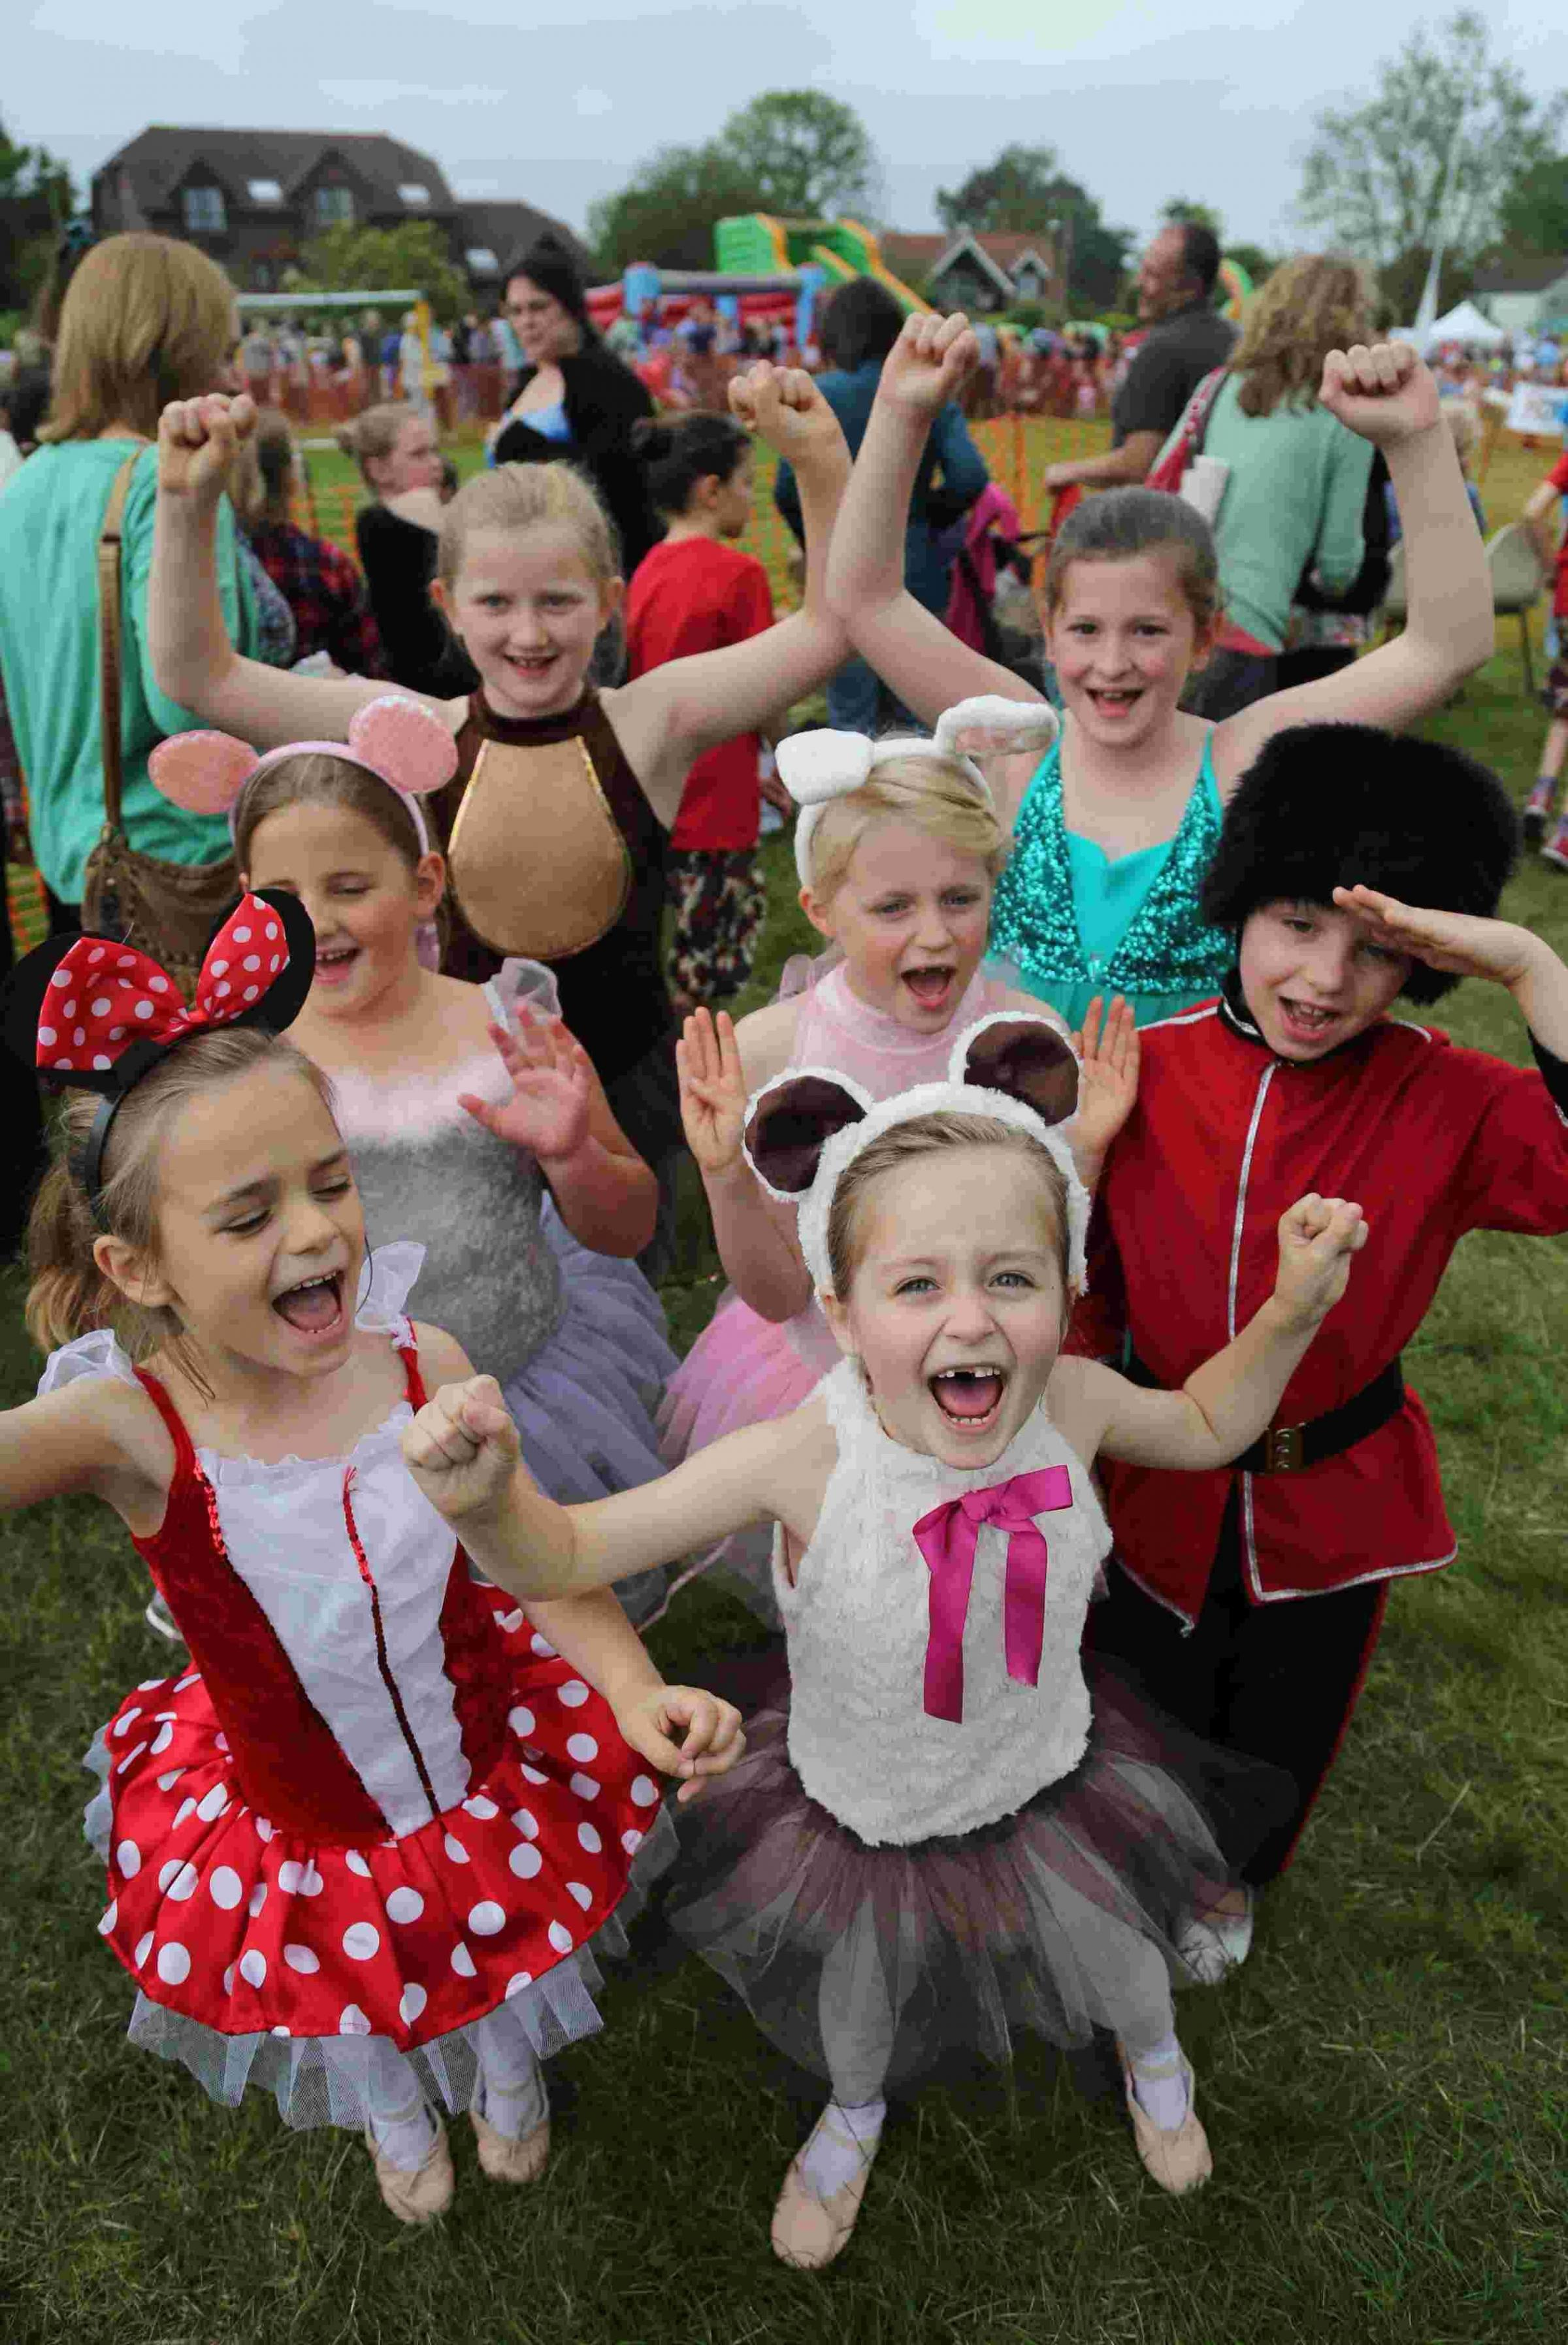 Family fun day in Ringwood a huge success